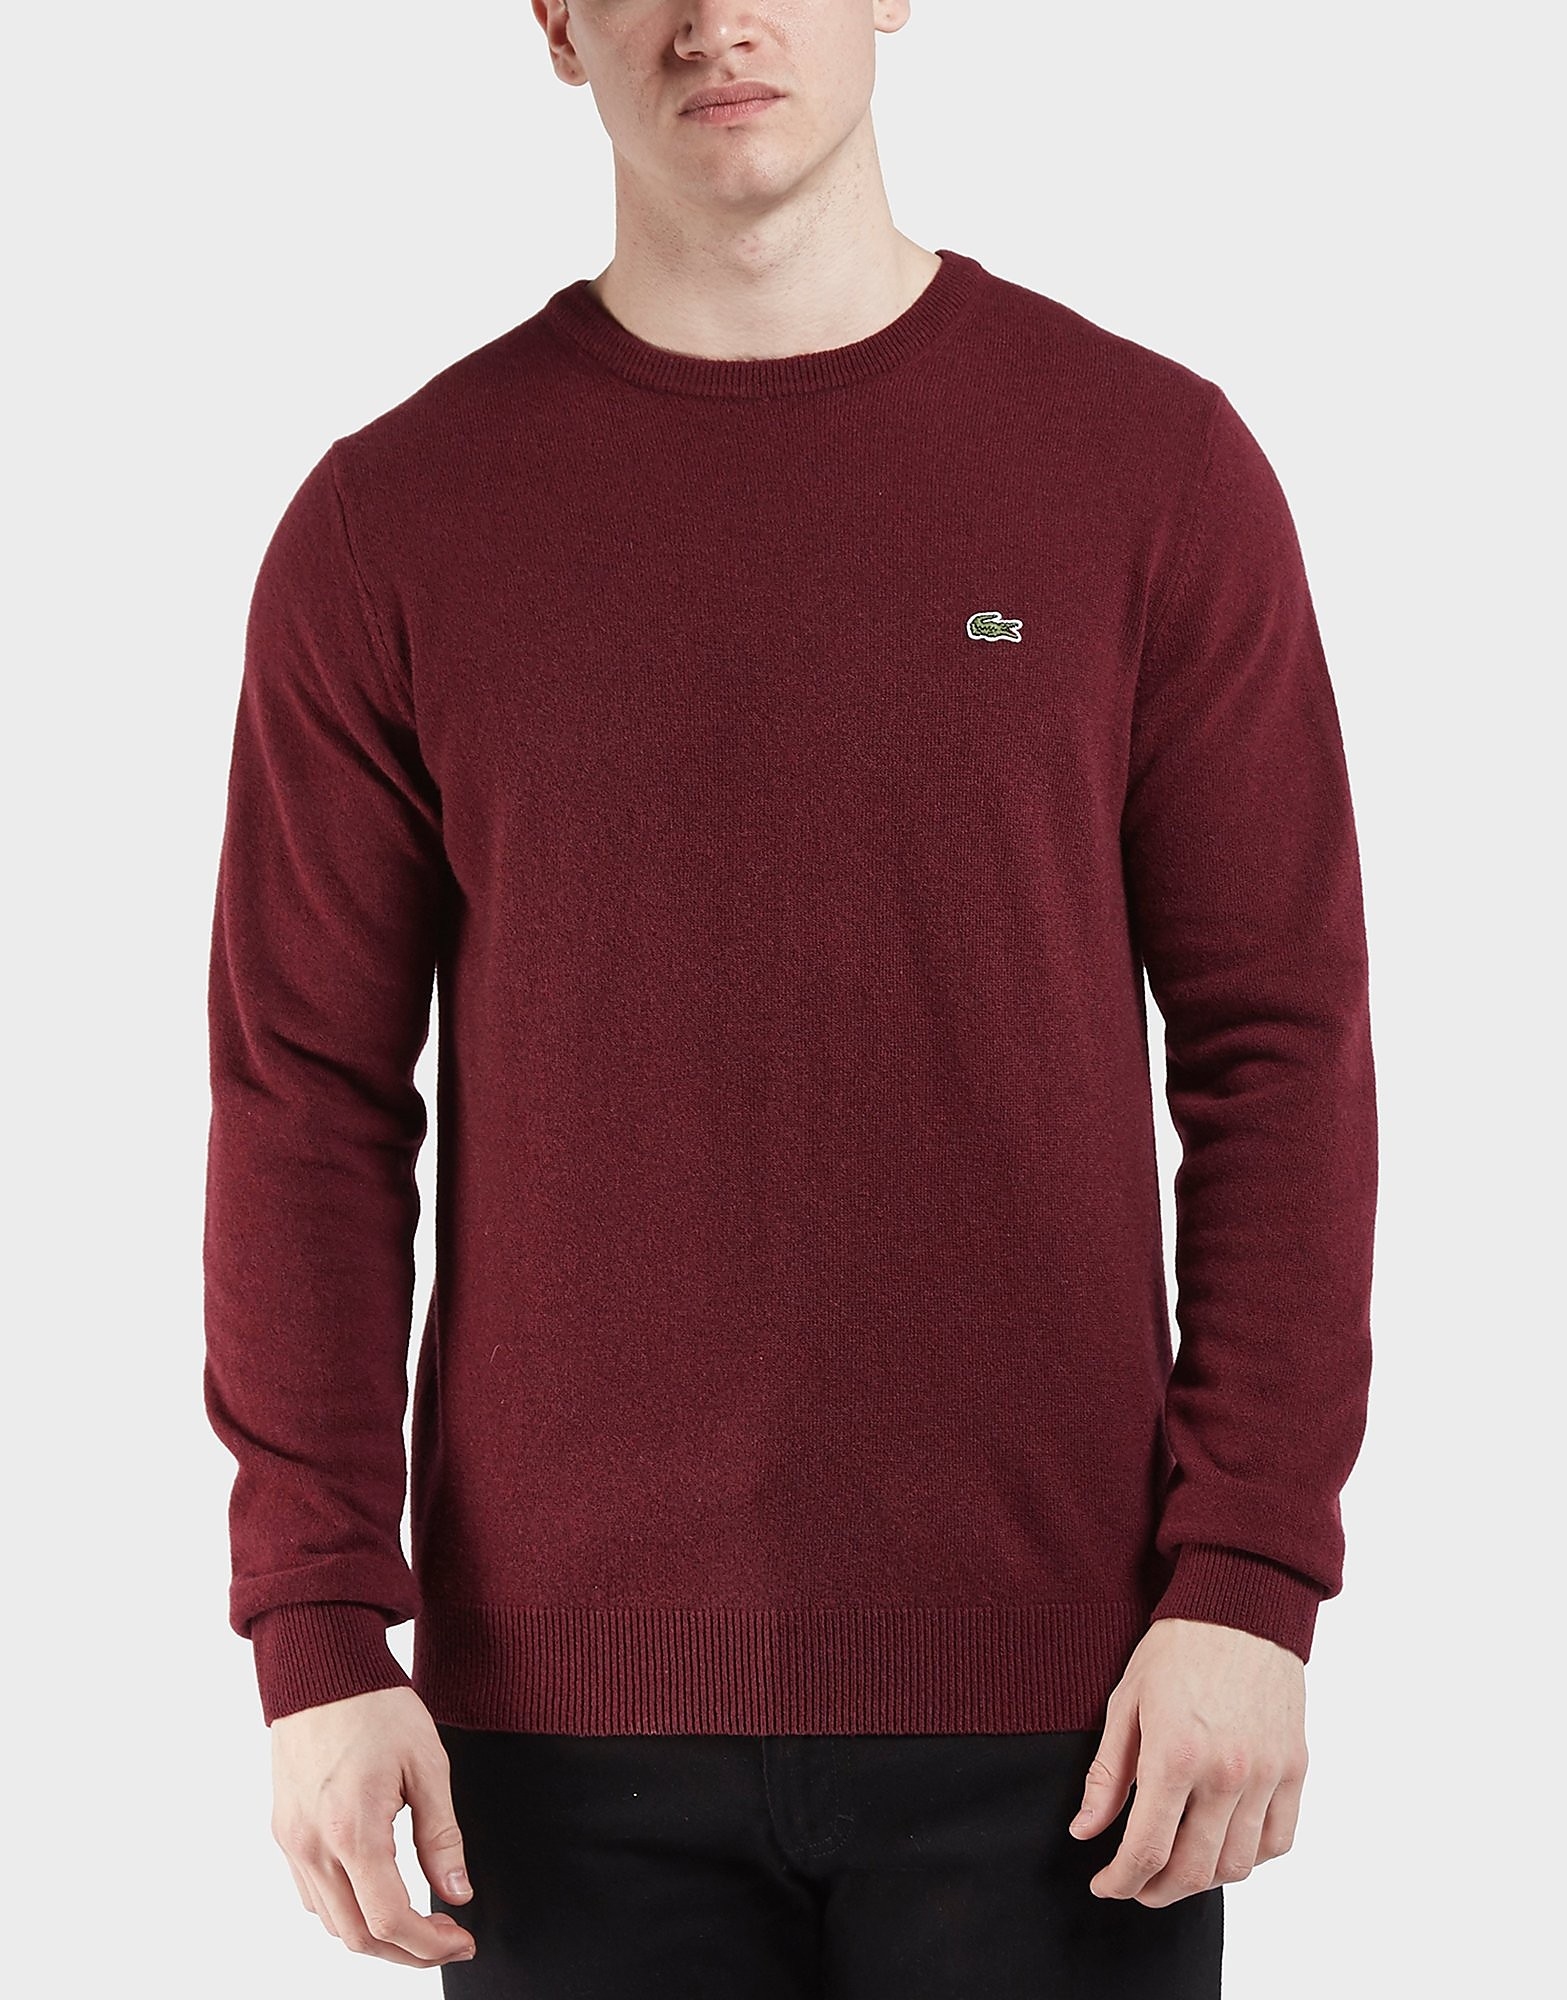 Lacoste Lambswool Knitted Jumper